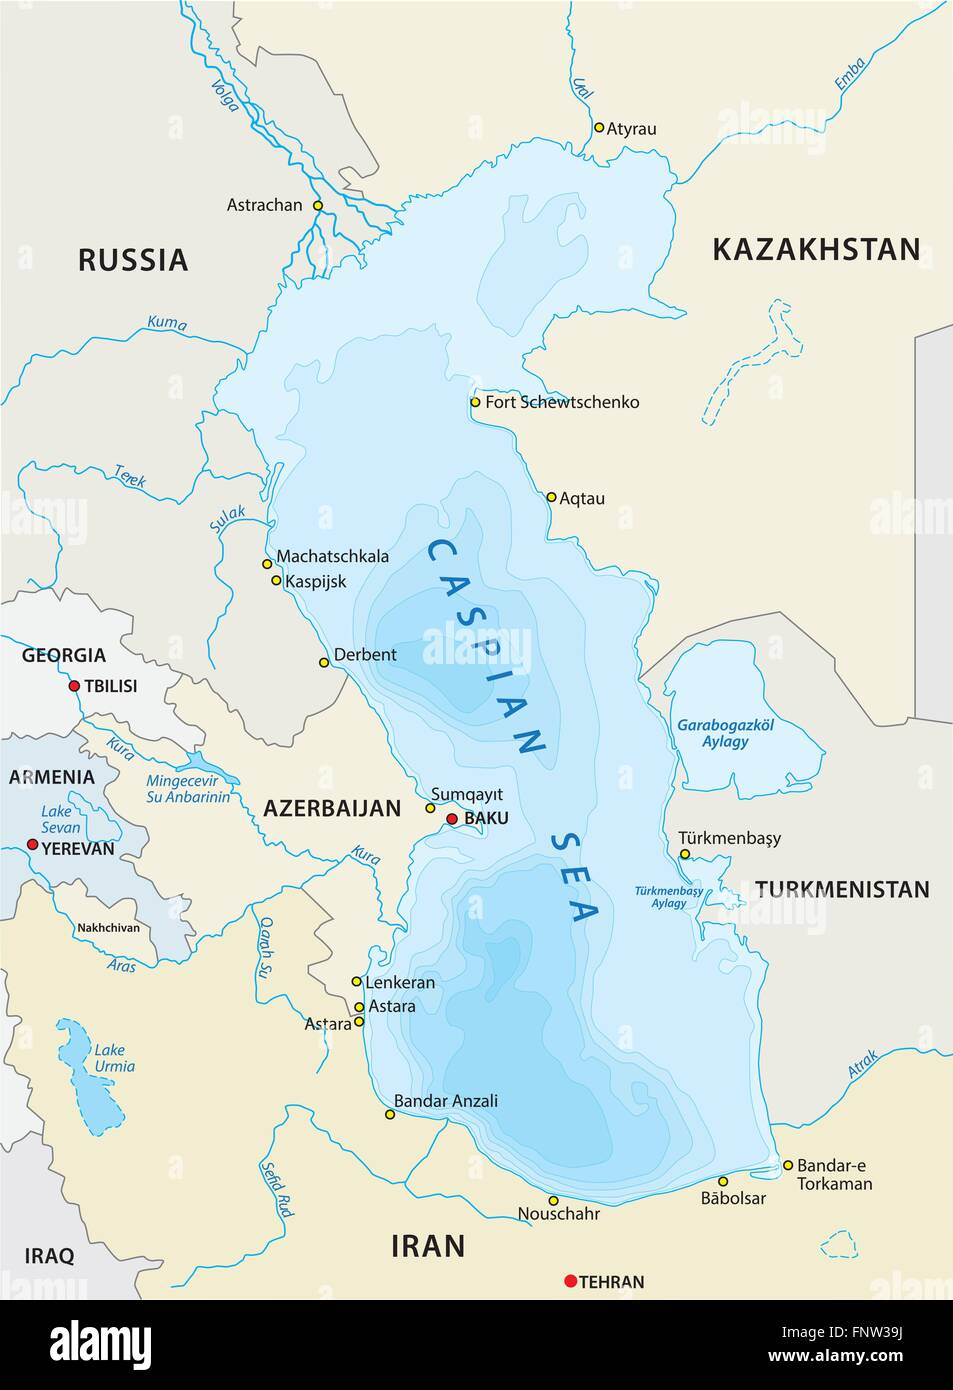 Map Of Caspian Sea Map Of The Caspian Sea Stock Photos & Map Of The Caspian Sea Stock  Map Of Caspian Sea